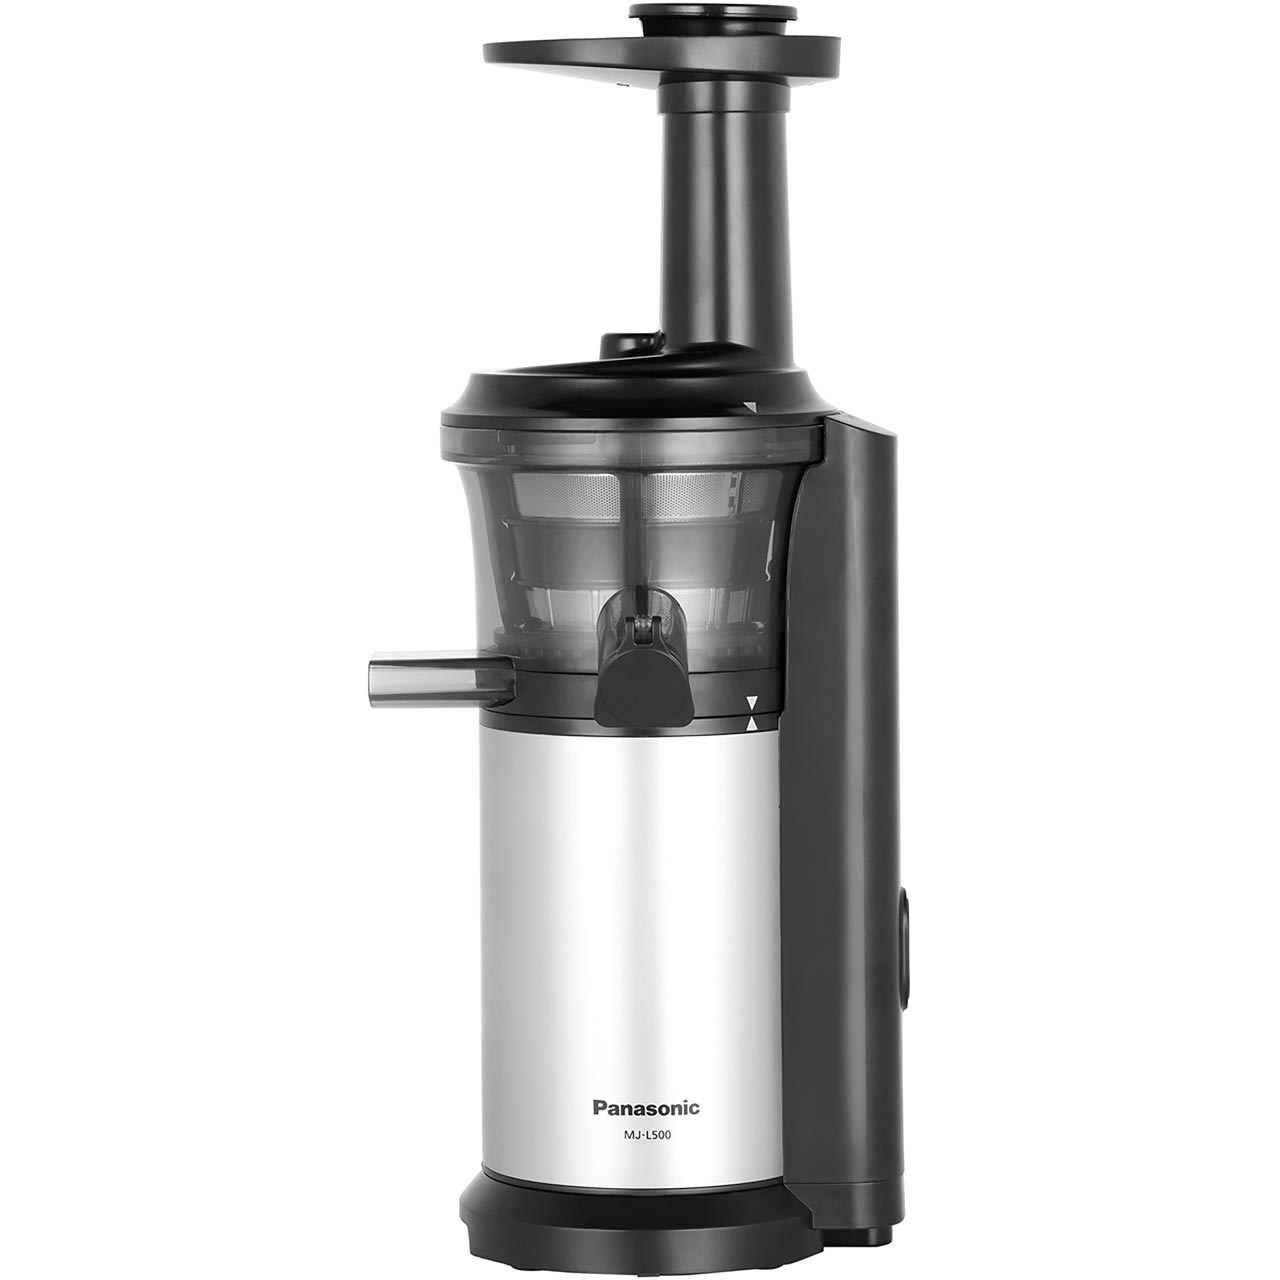 Panasonic Mj L500sxc Slow Juicer : Panasonic MJ-L500SXC Slow Juicer - Silver